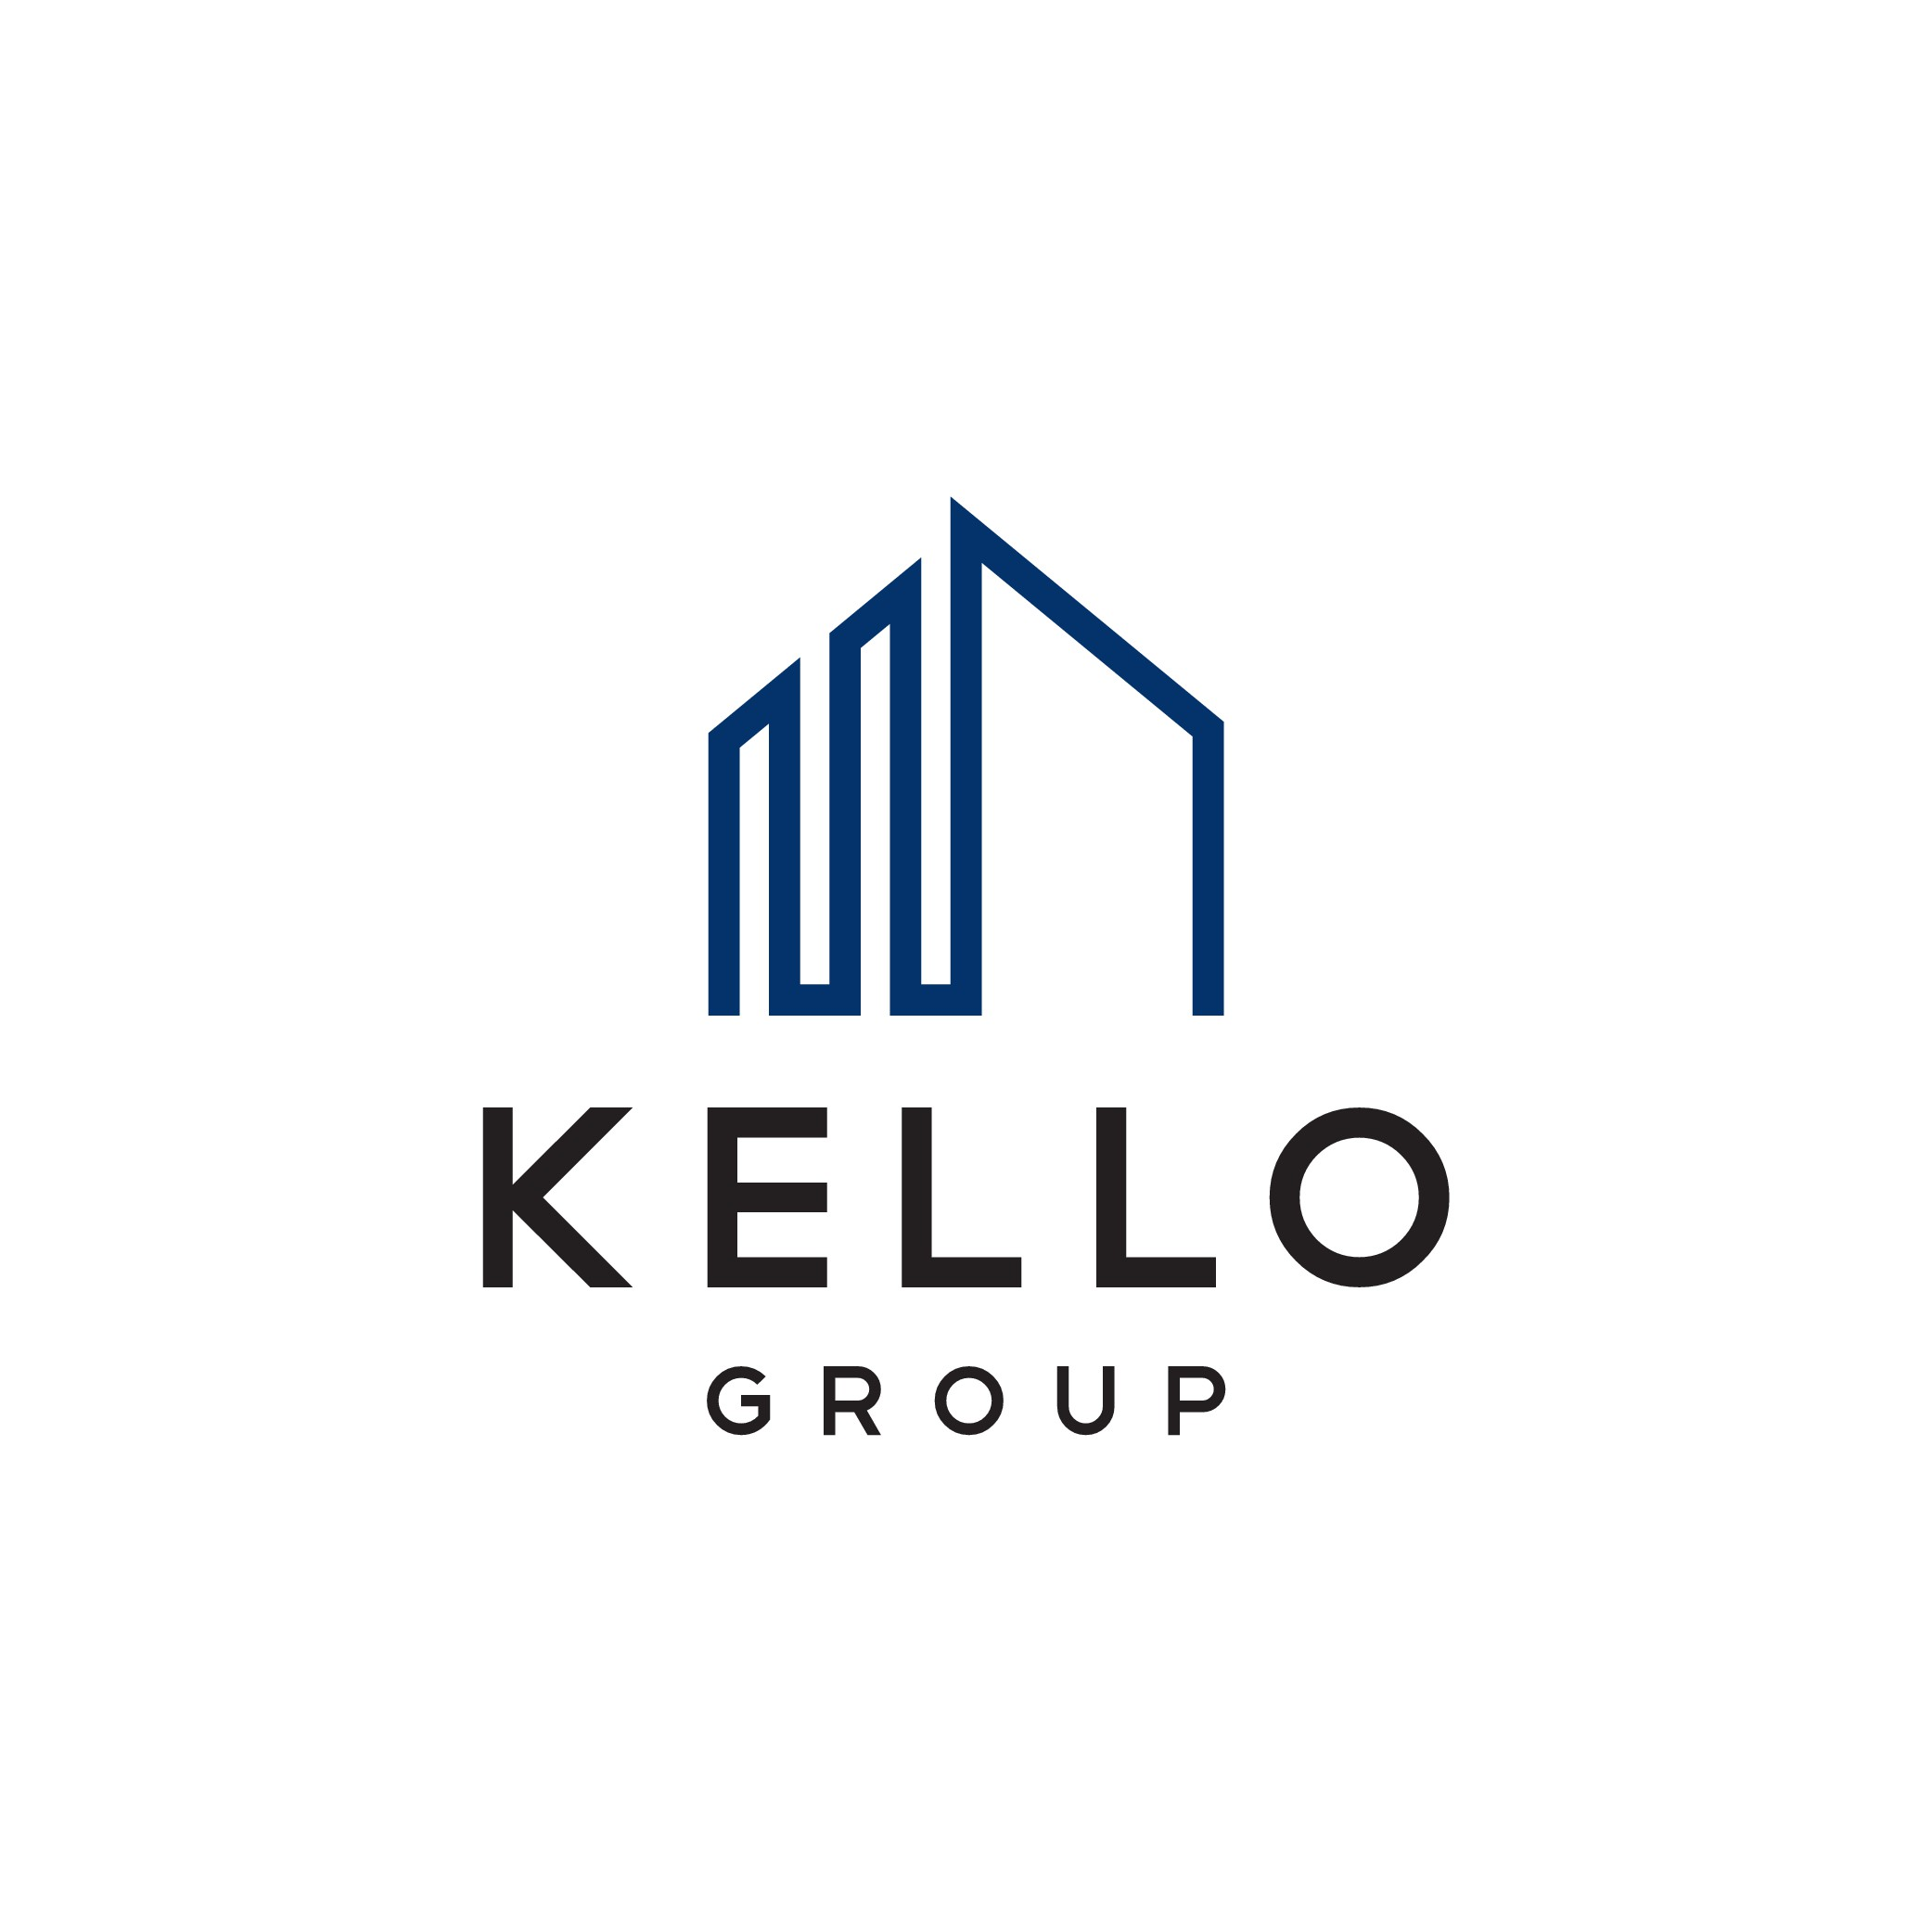 New real estate group looking for a simple abstract logo.